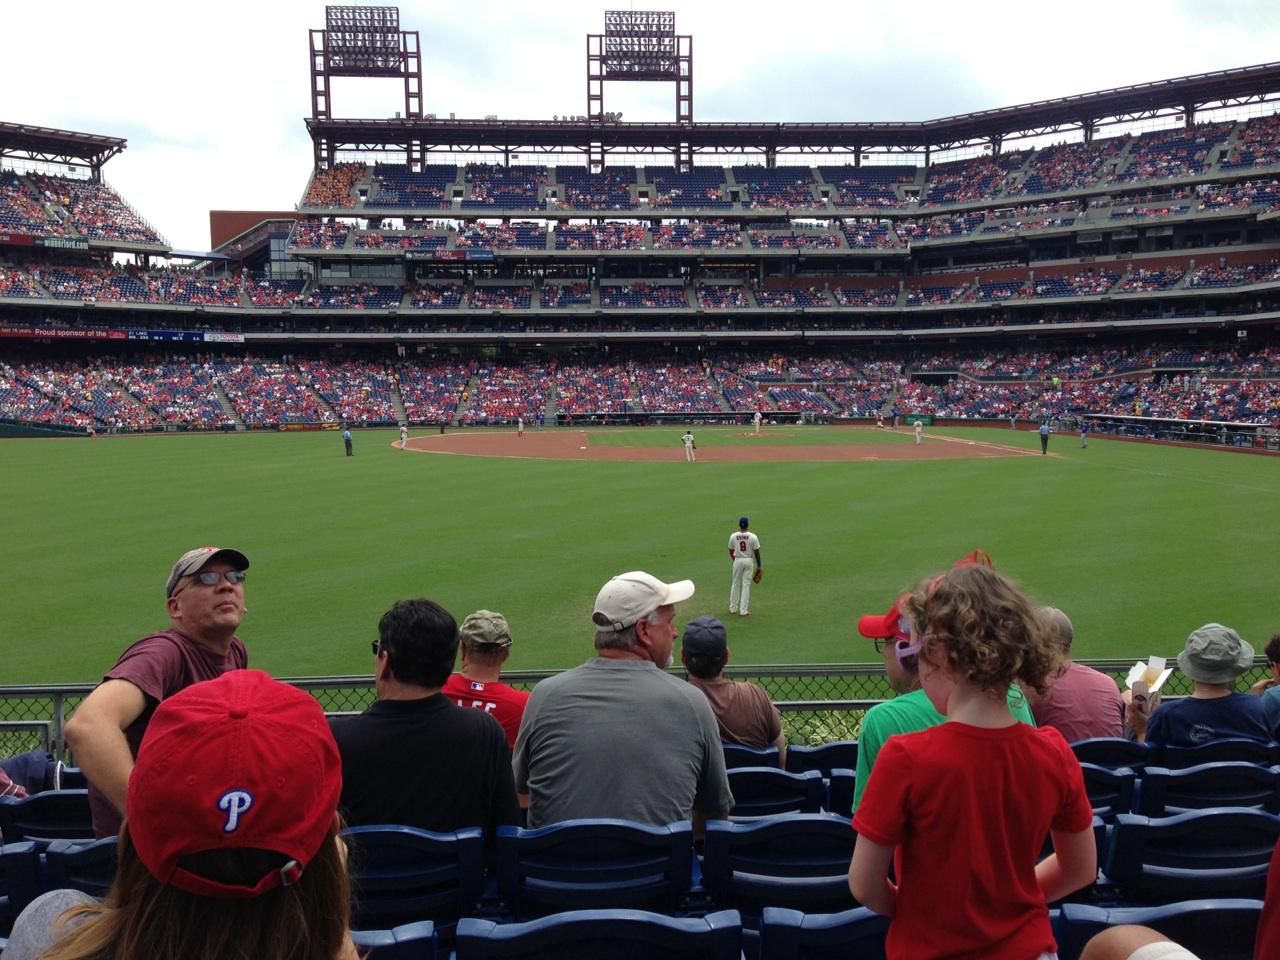 Citizens Bank Park Section 143 Row 7 Seat 15